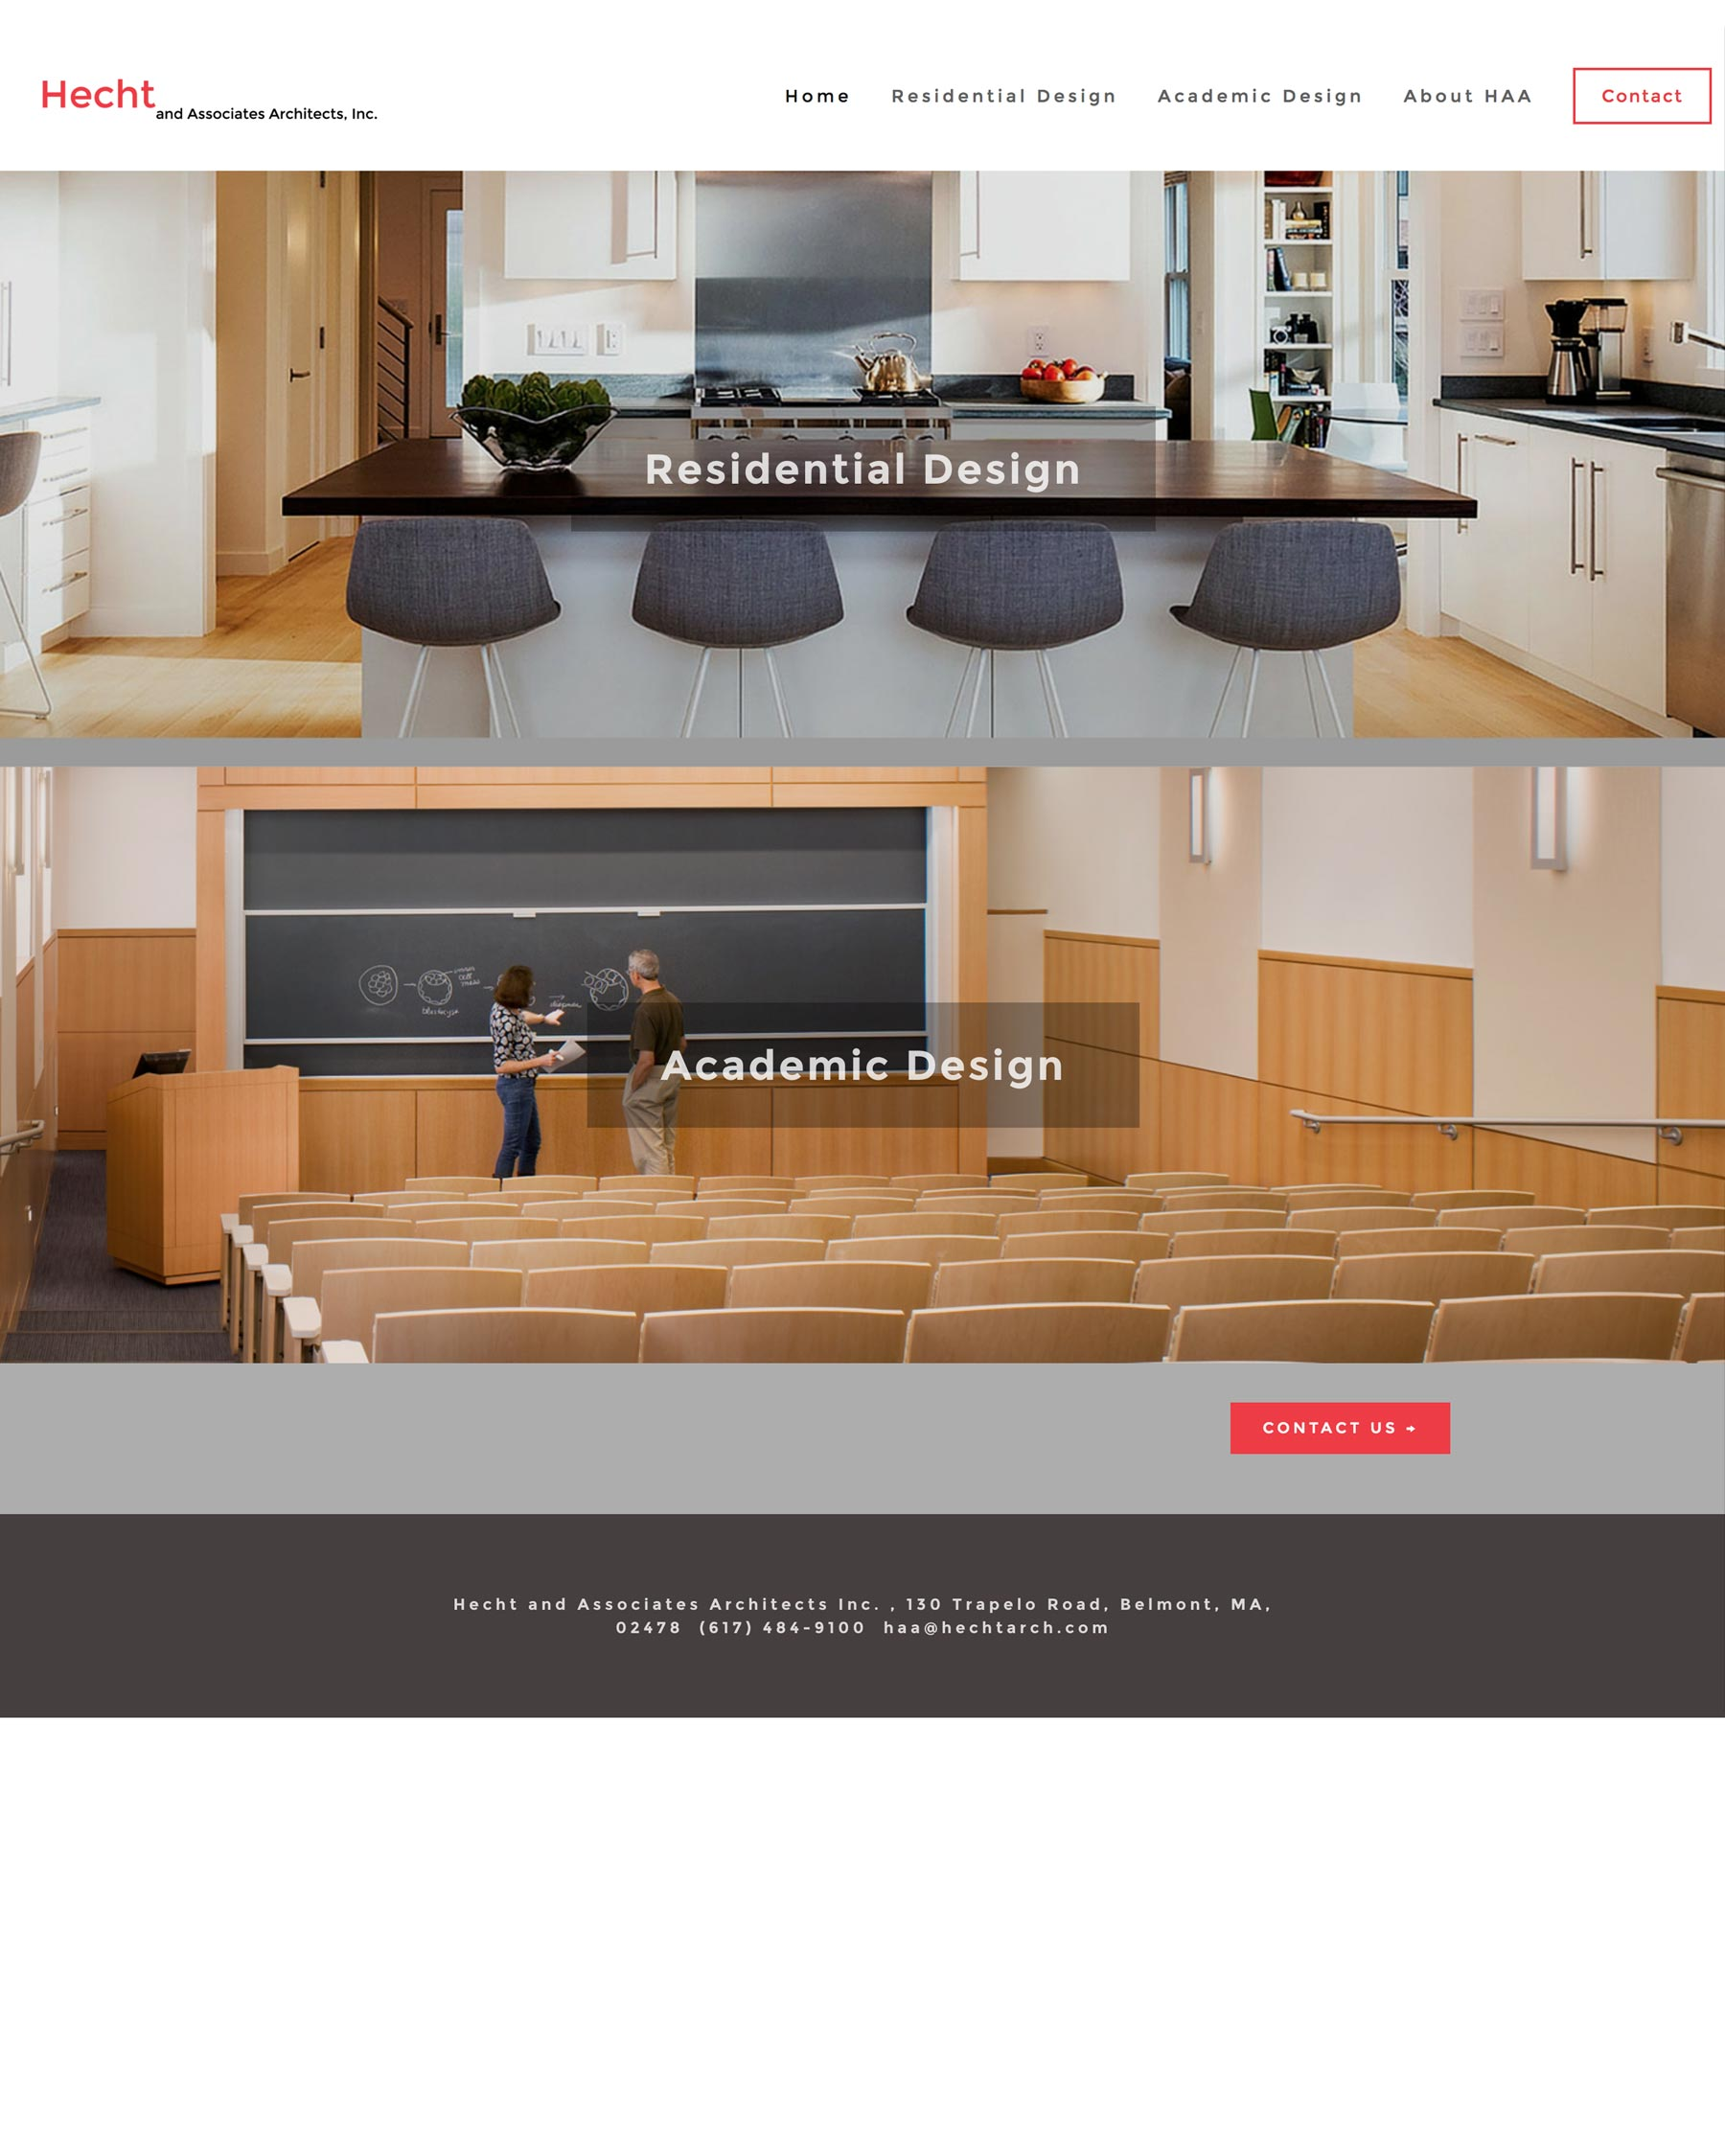 Hecht & Associates Architects - Residential and Academic Architectural Firm